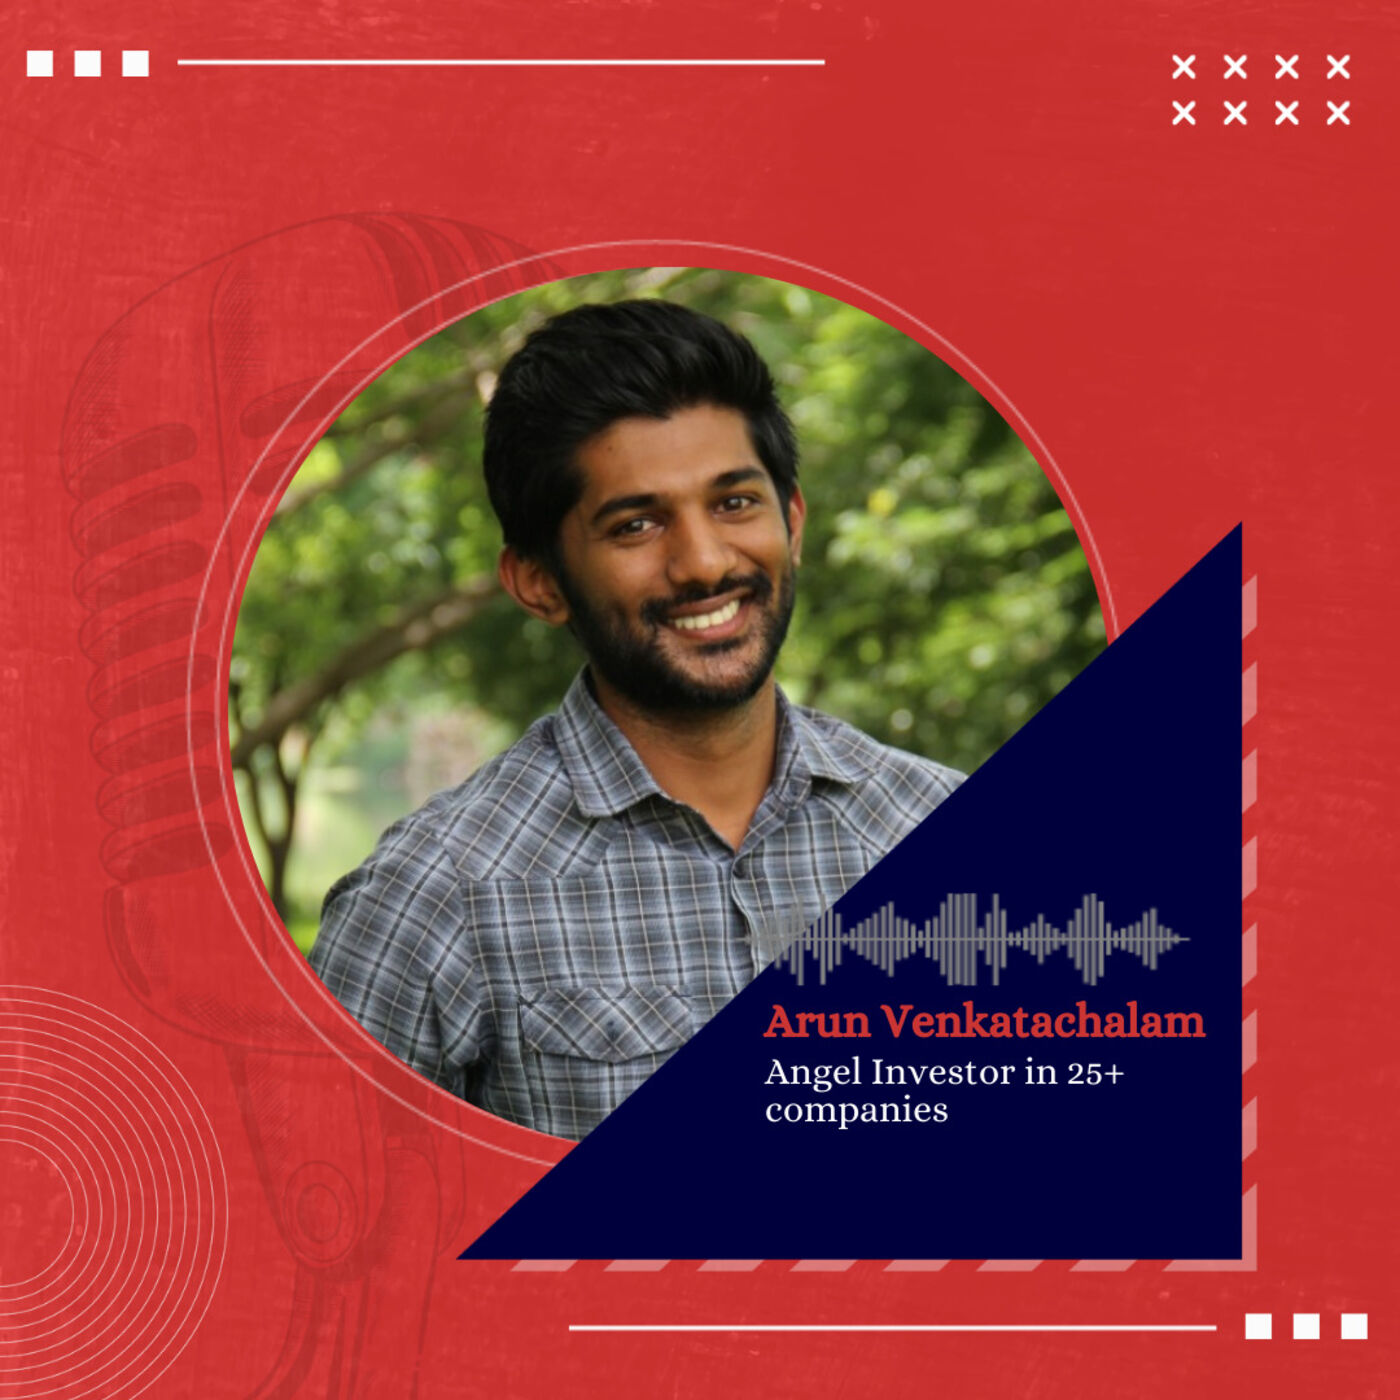 Starting as an angel investor, developing an understanding of spaces and sourcing potential deals with Arun Venkatachalam